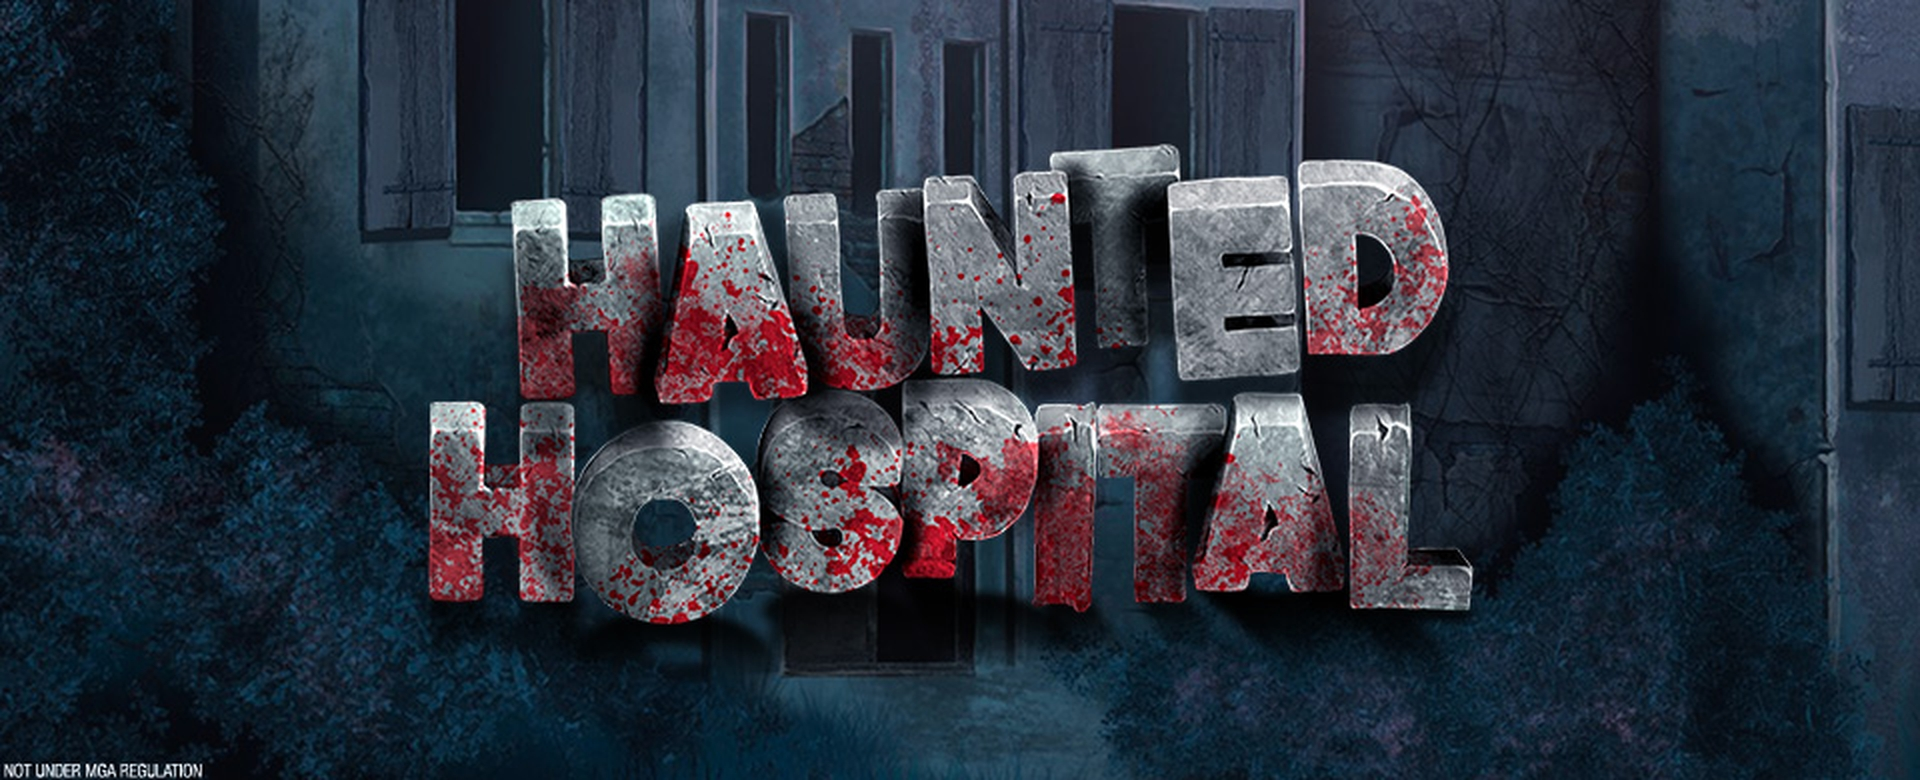 Haunted Hospital Online Slot Demo Game by Wazdan